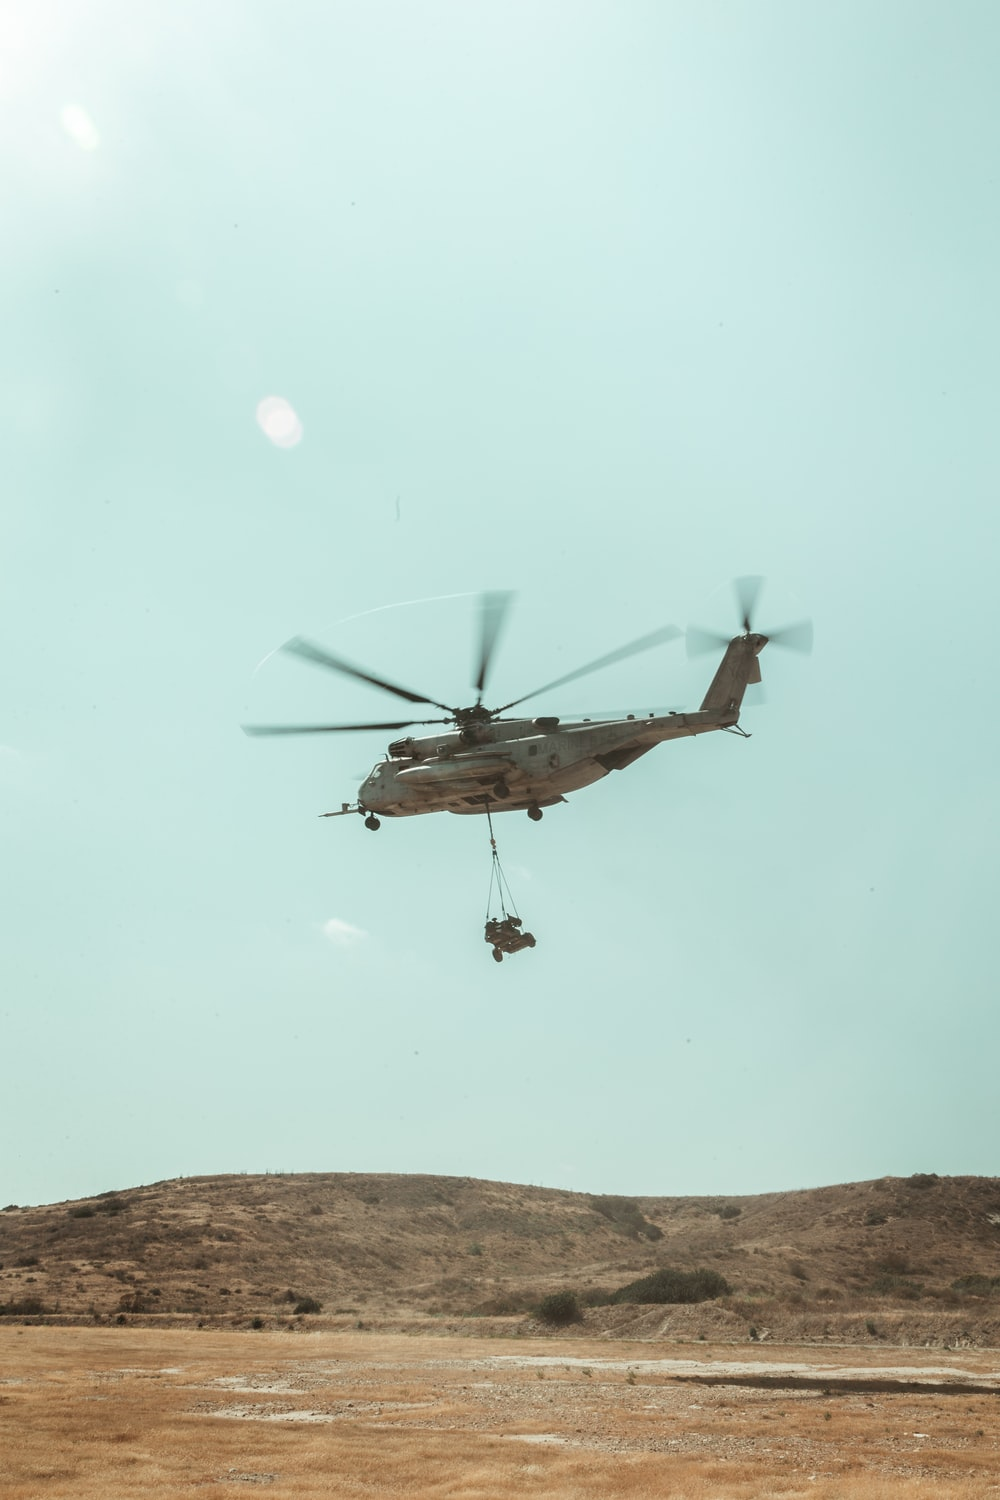 brown and white helicopter flying during daytime